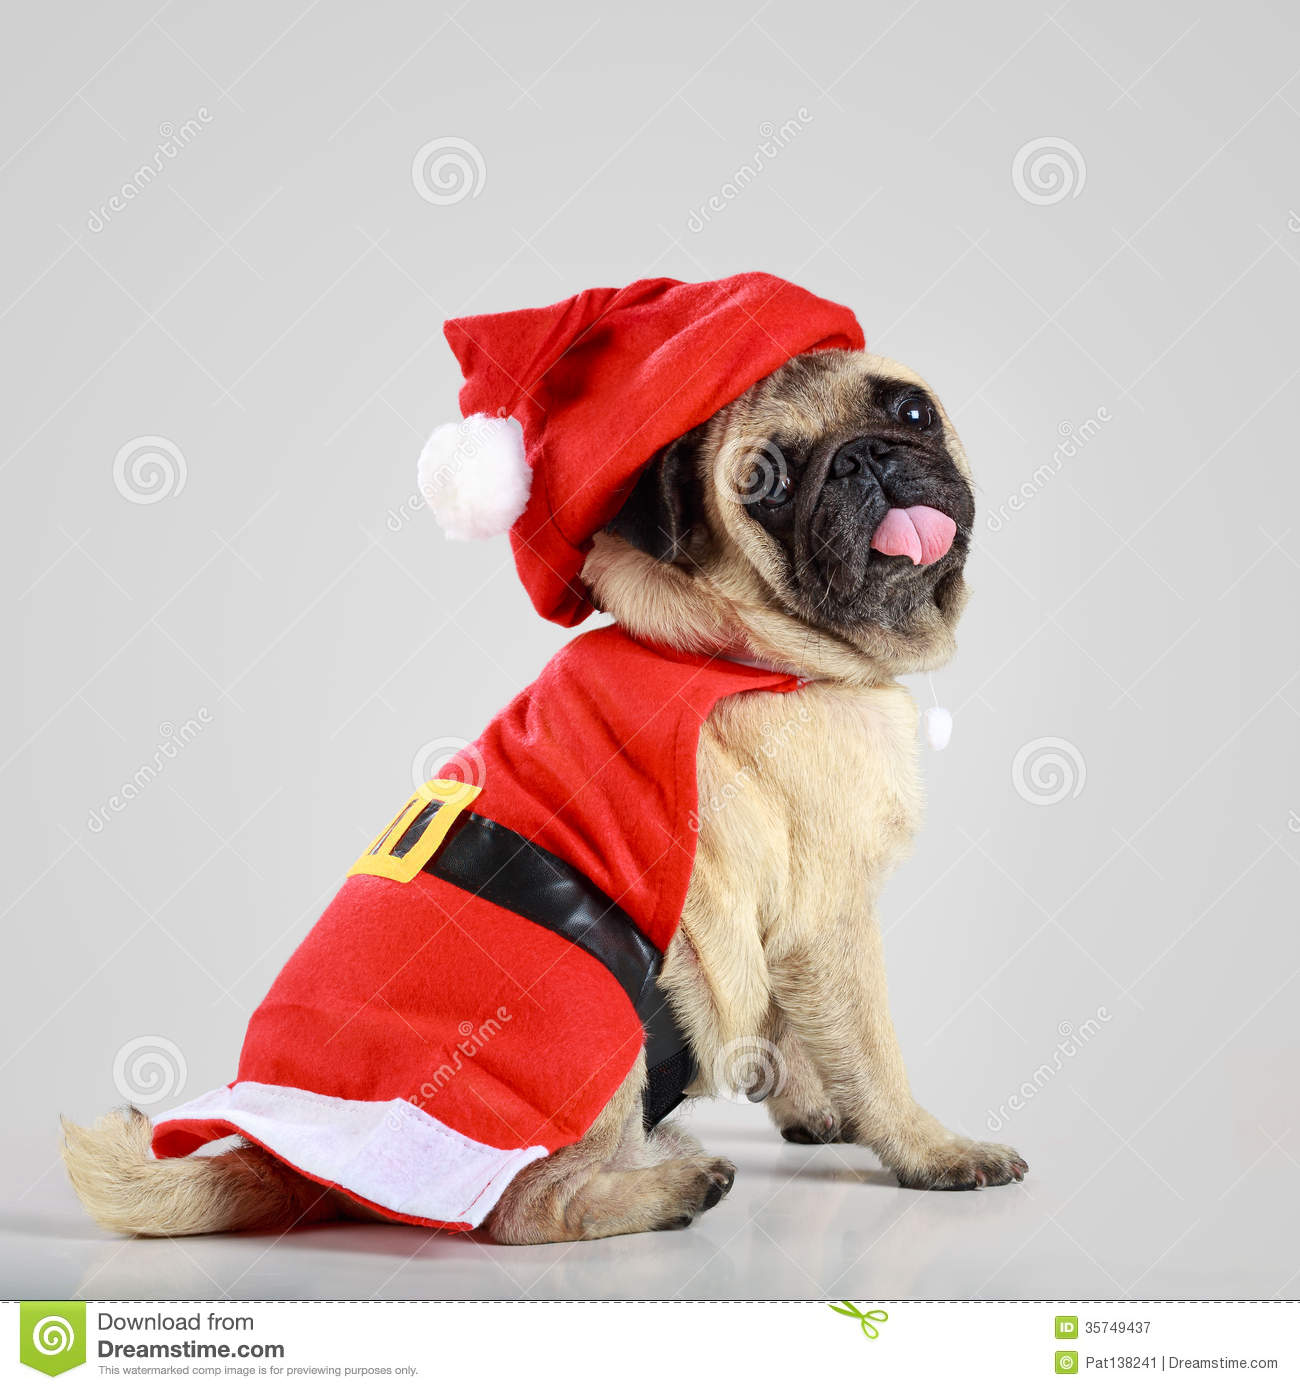 Cute Pug Puppy Wearing A Santa Claus Costume Royalty Free Stock ...